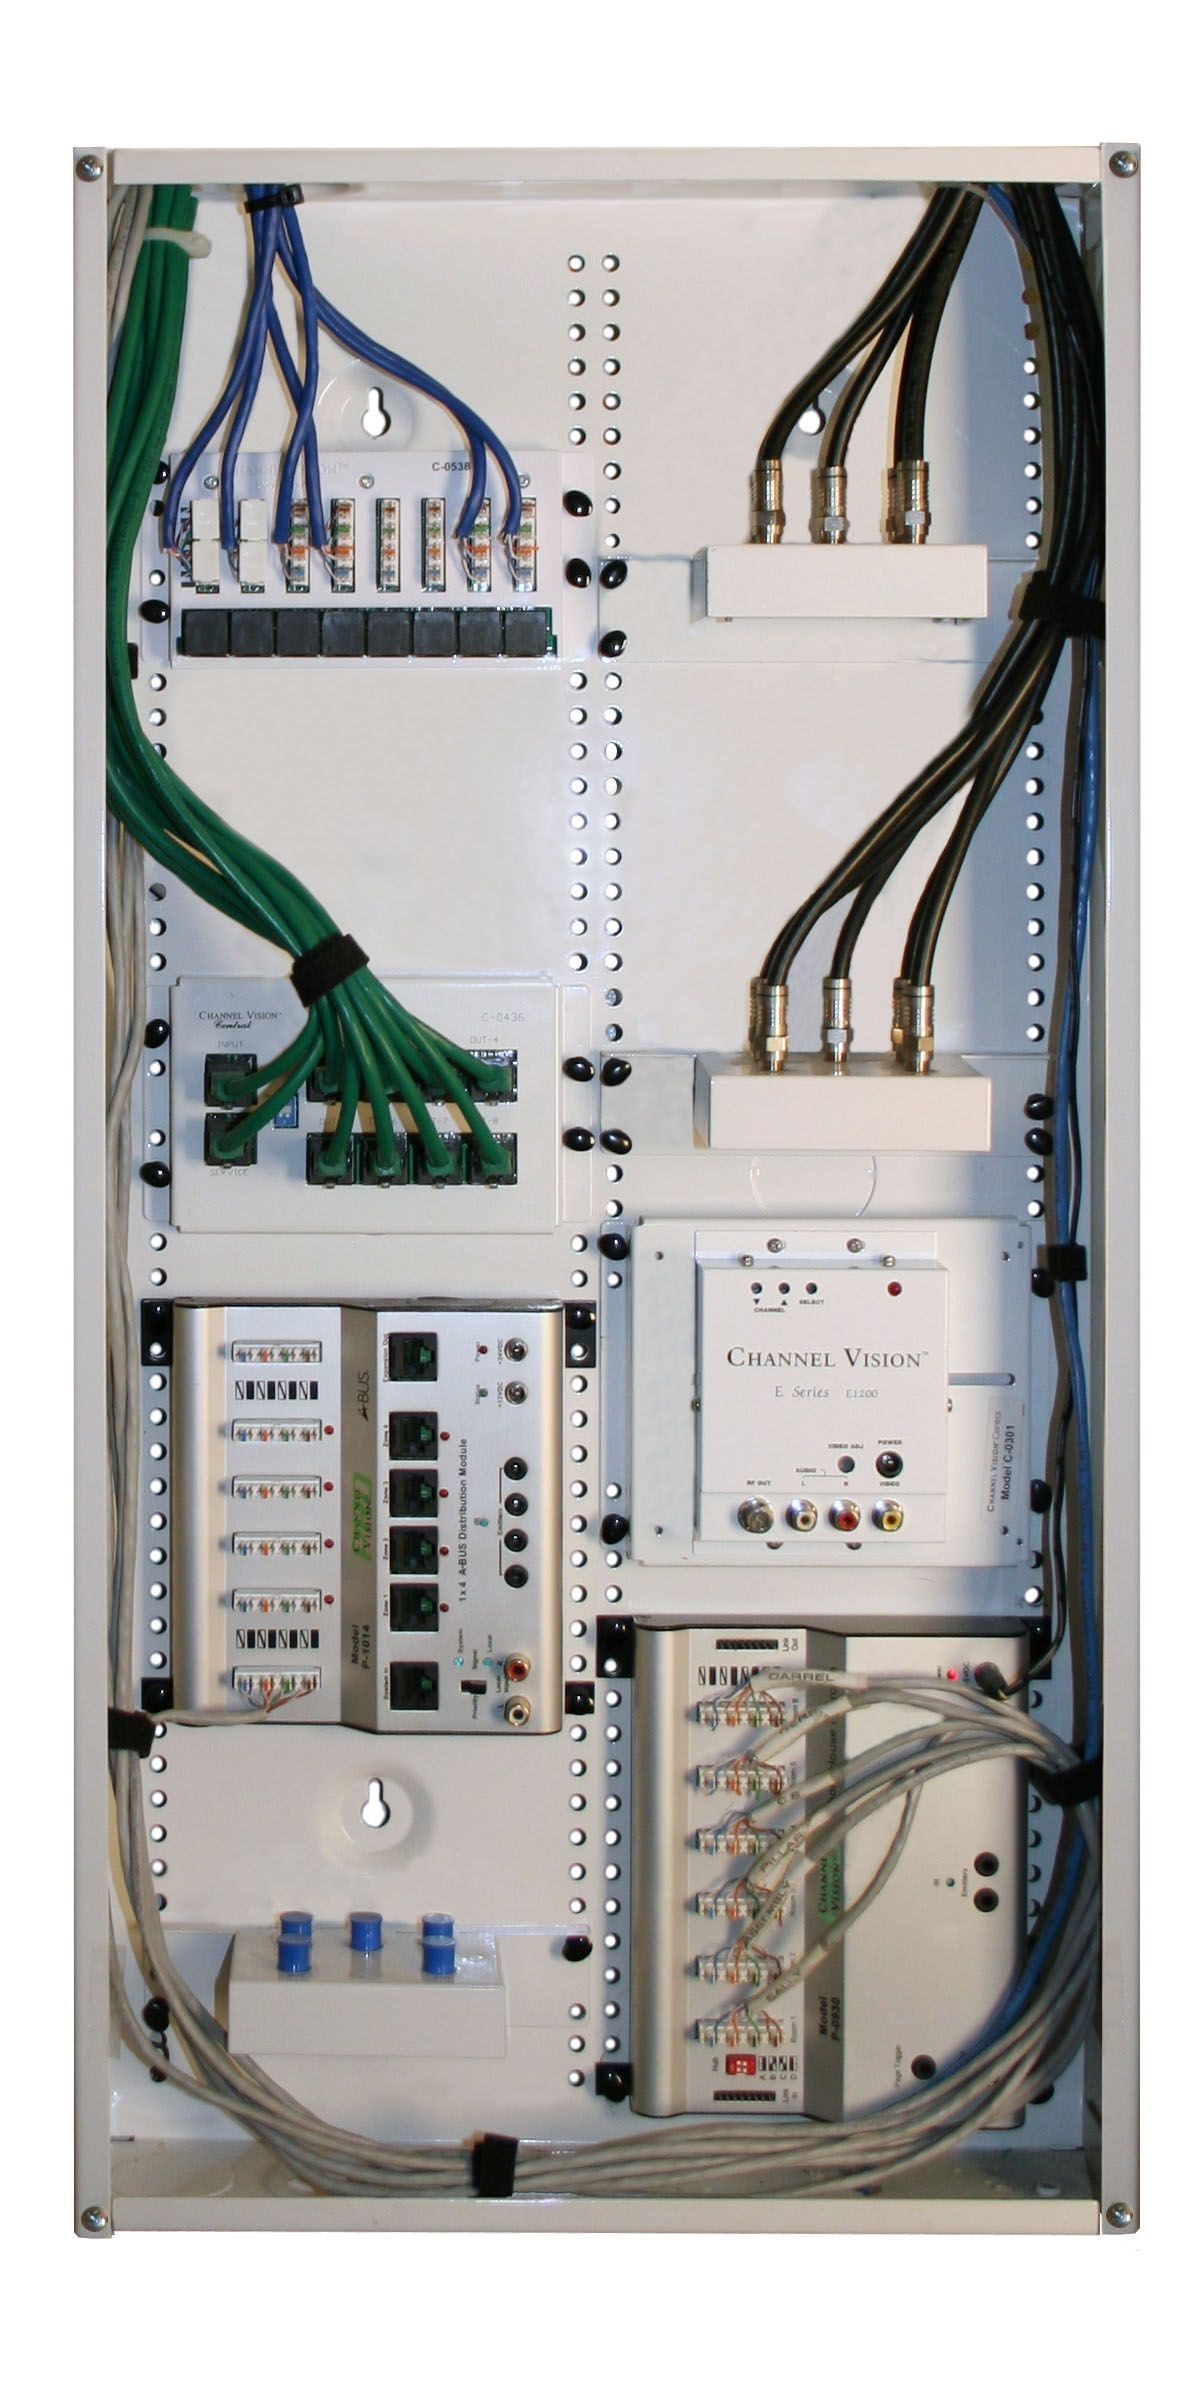 structured wiring cable distribution panel for home tv internet cessna audio panel wiring audio wiring panel [ 1200 x 2400 Pixel ]